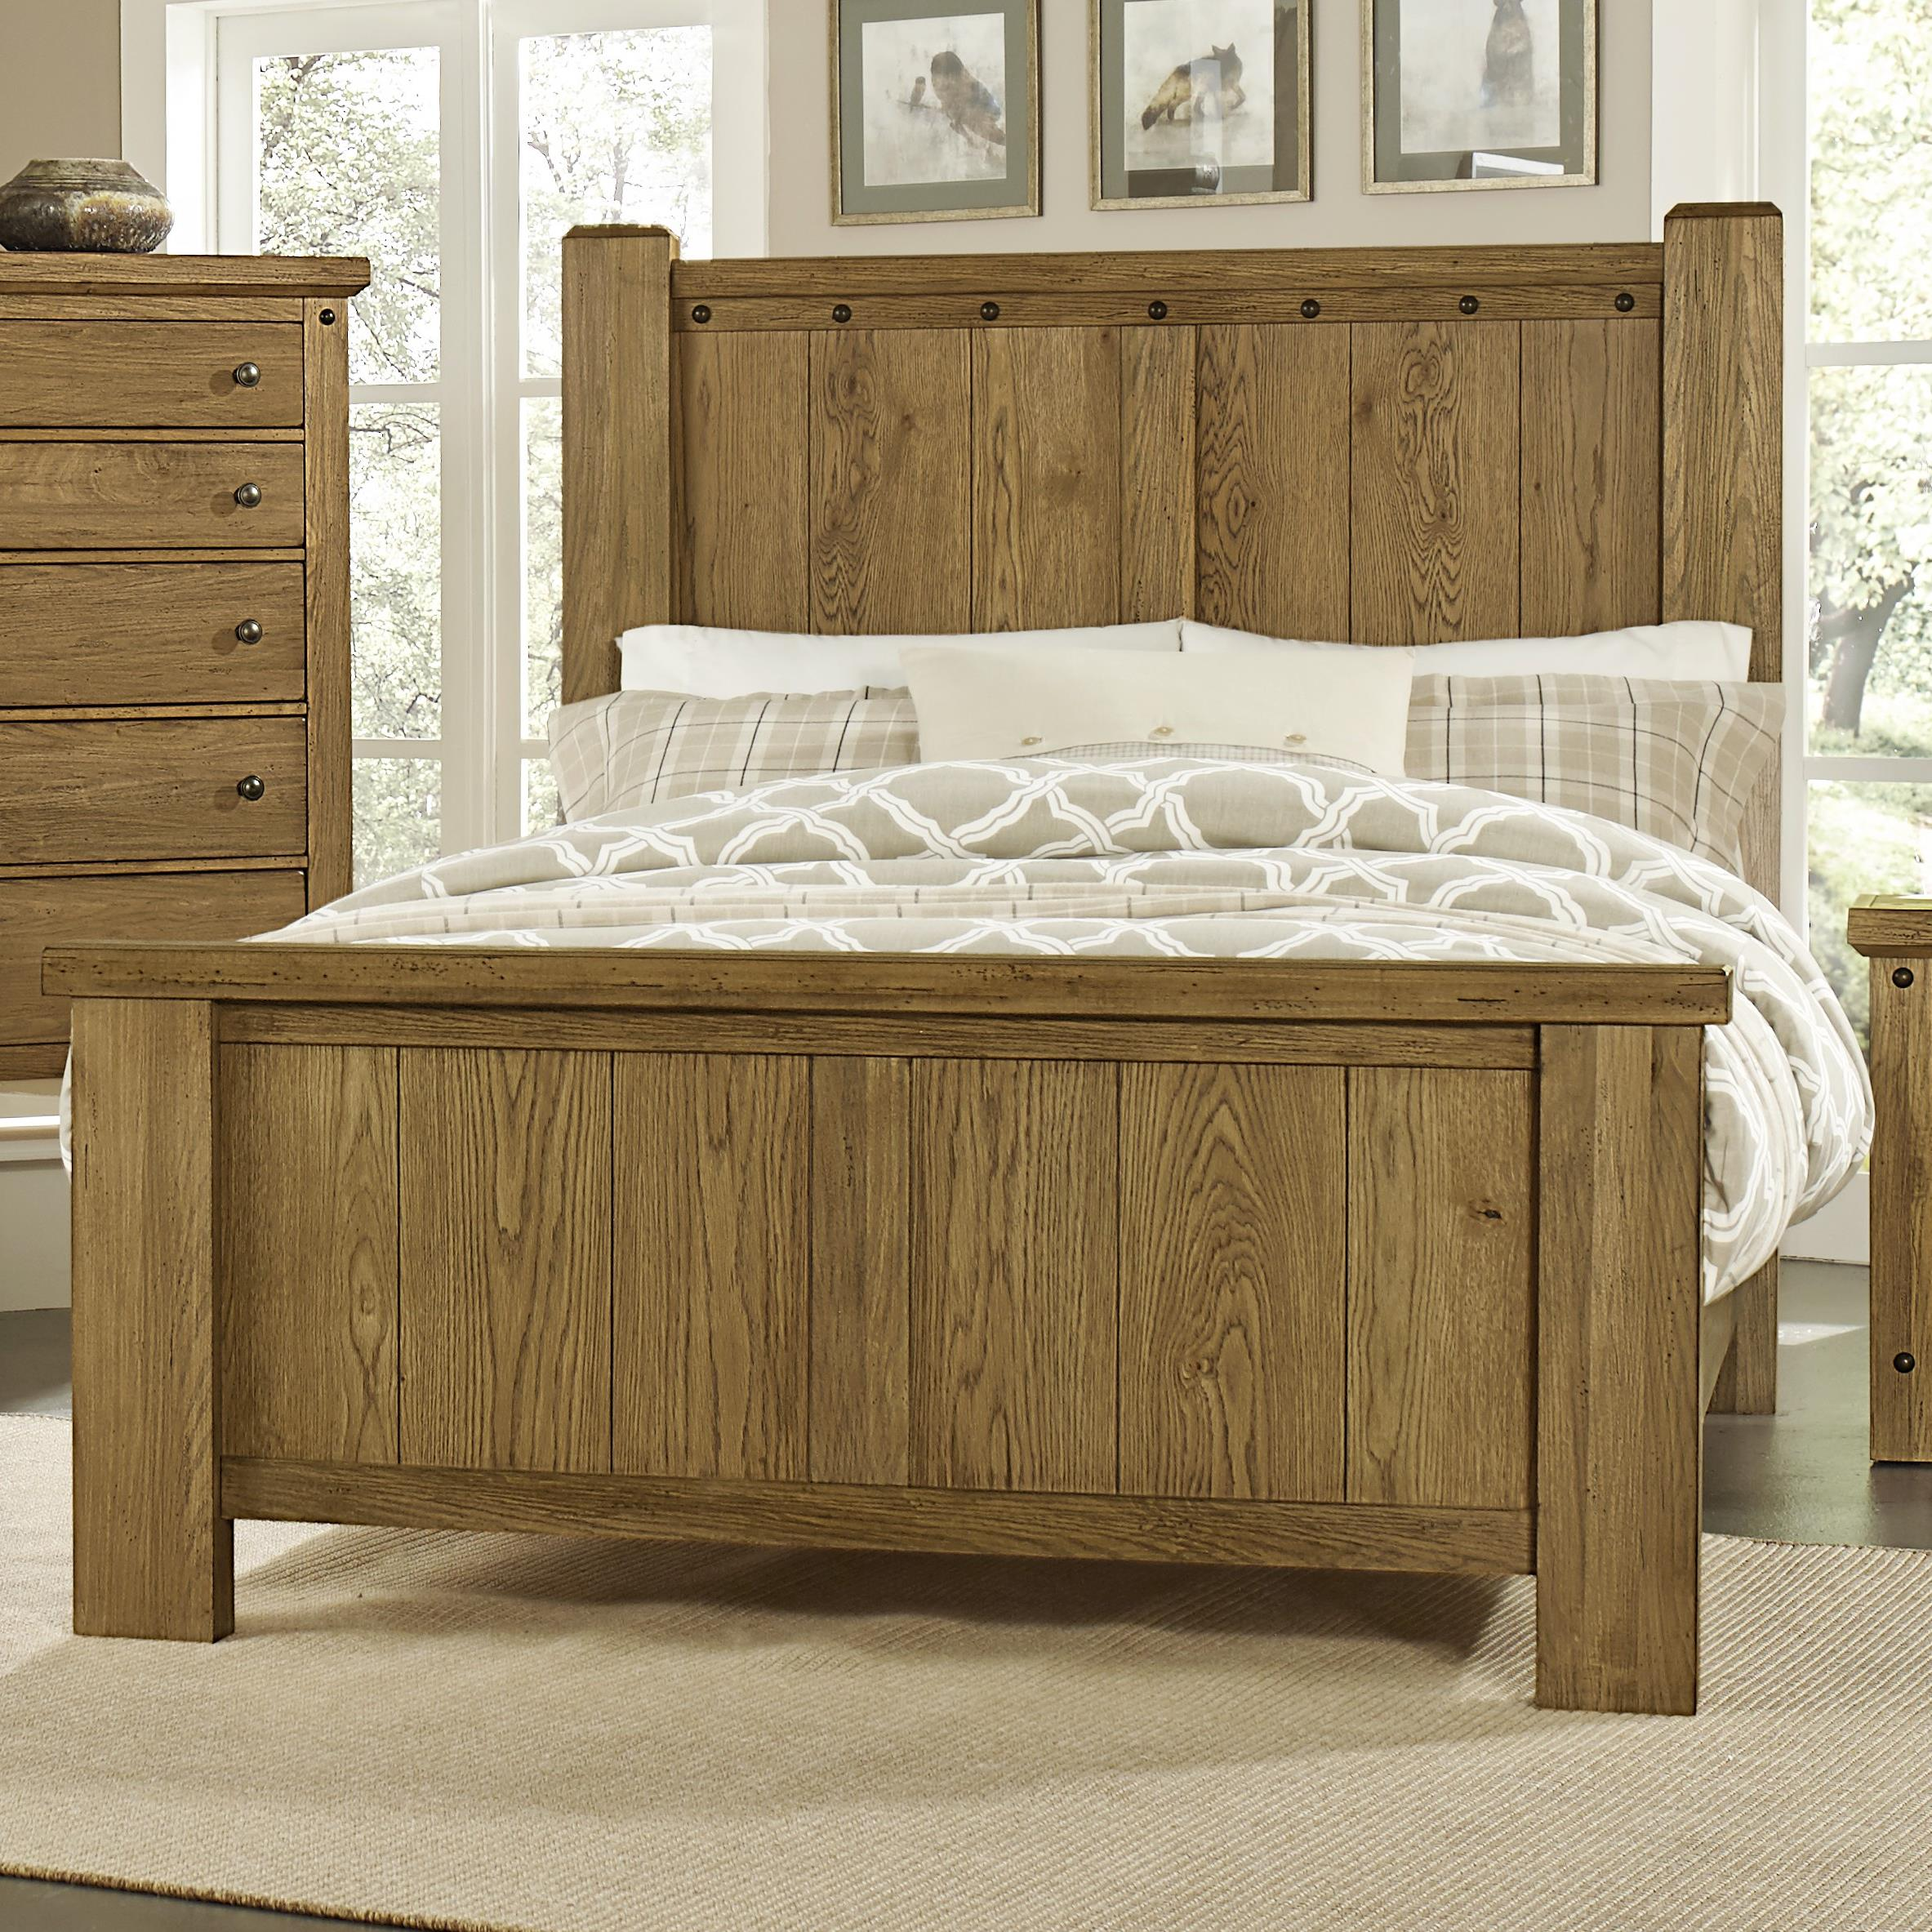 Vaughan Bassett Collaboration Queen Poster Bed - Item Number: 614-559+955+922